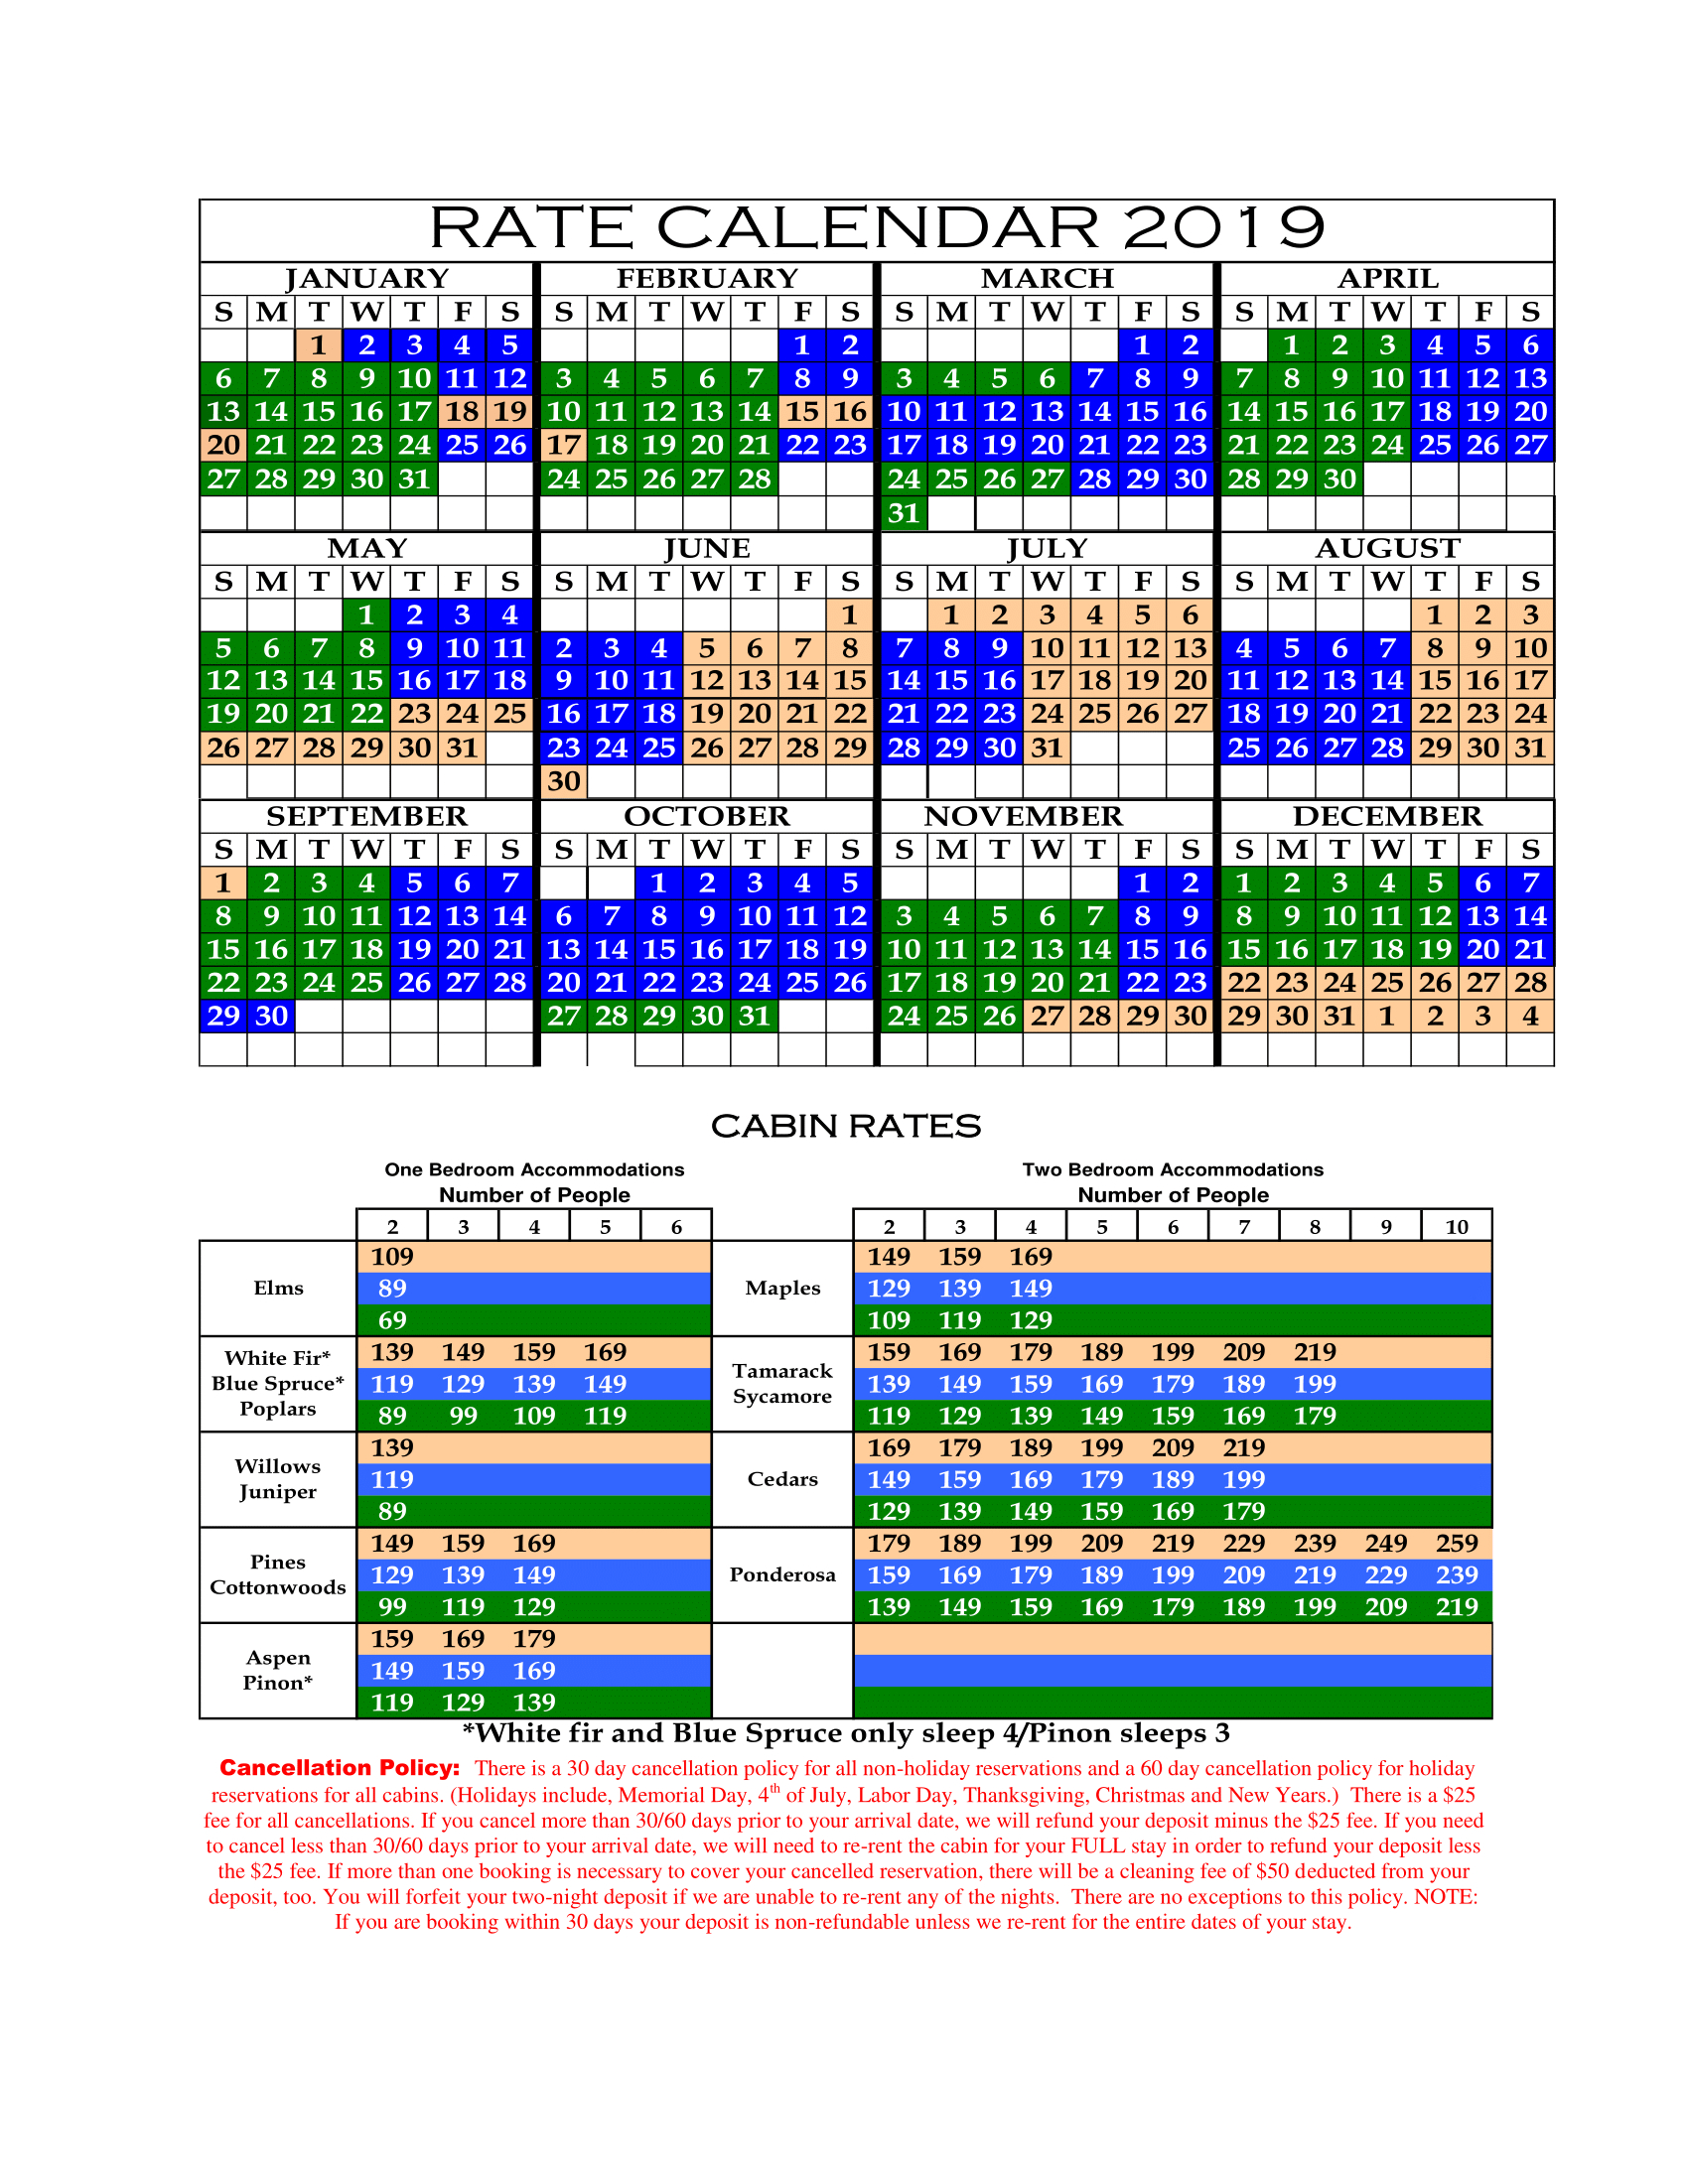 Reserve/rates/policies   Lazy Oaks   Page 4573582321 Calendar 2019 Rates